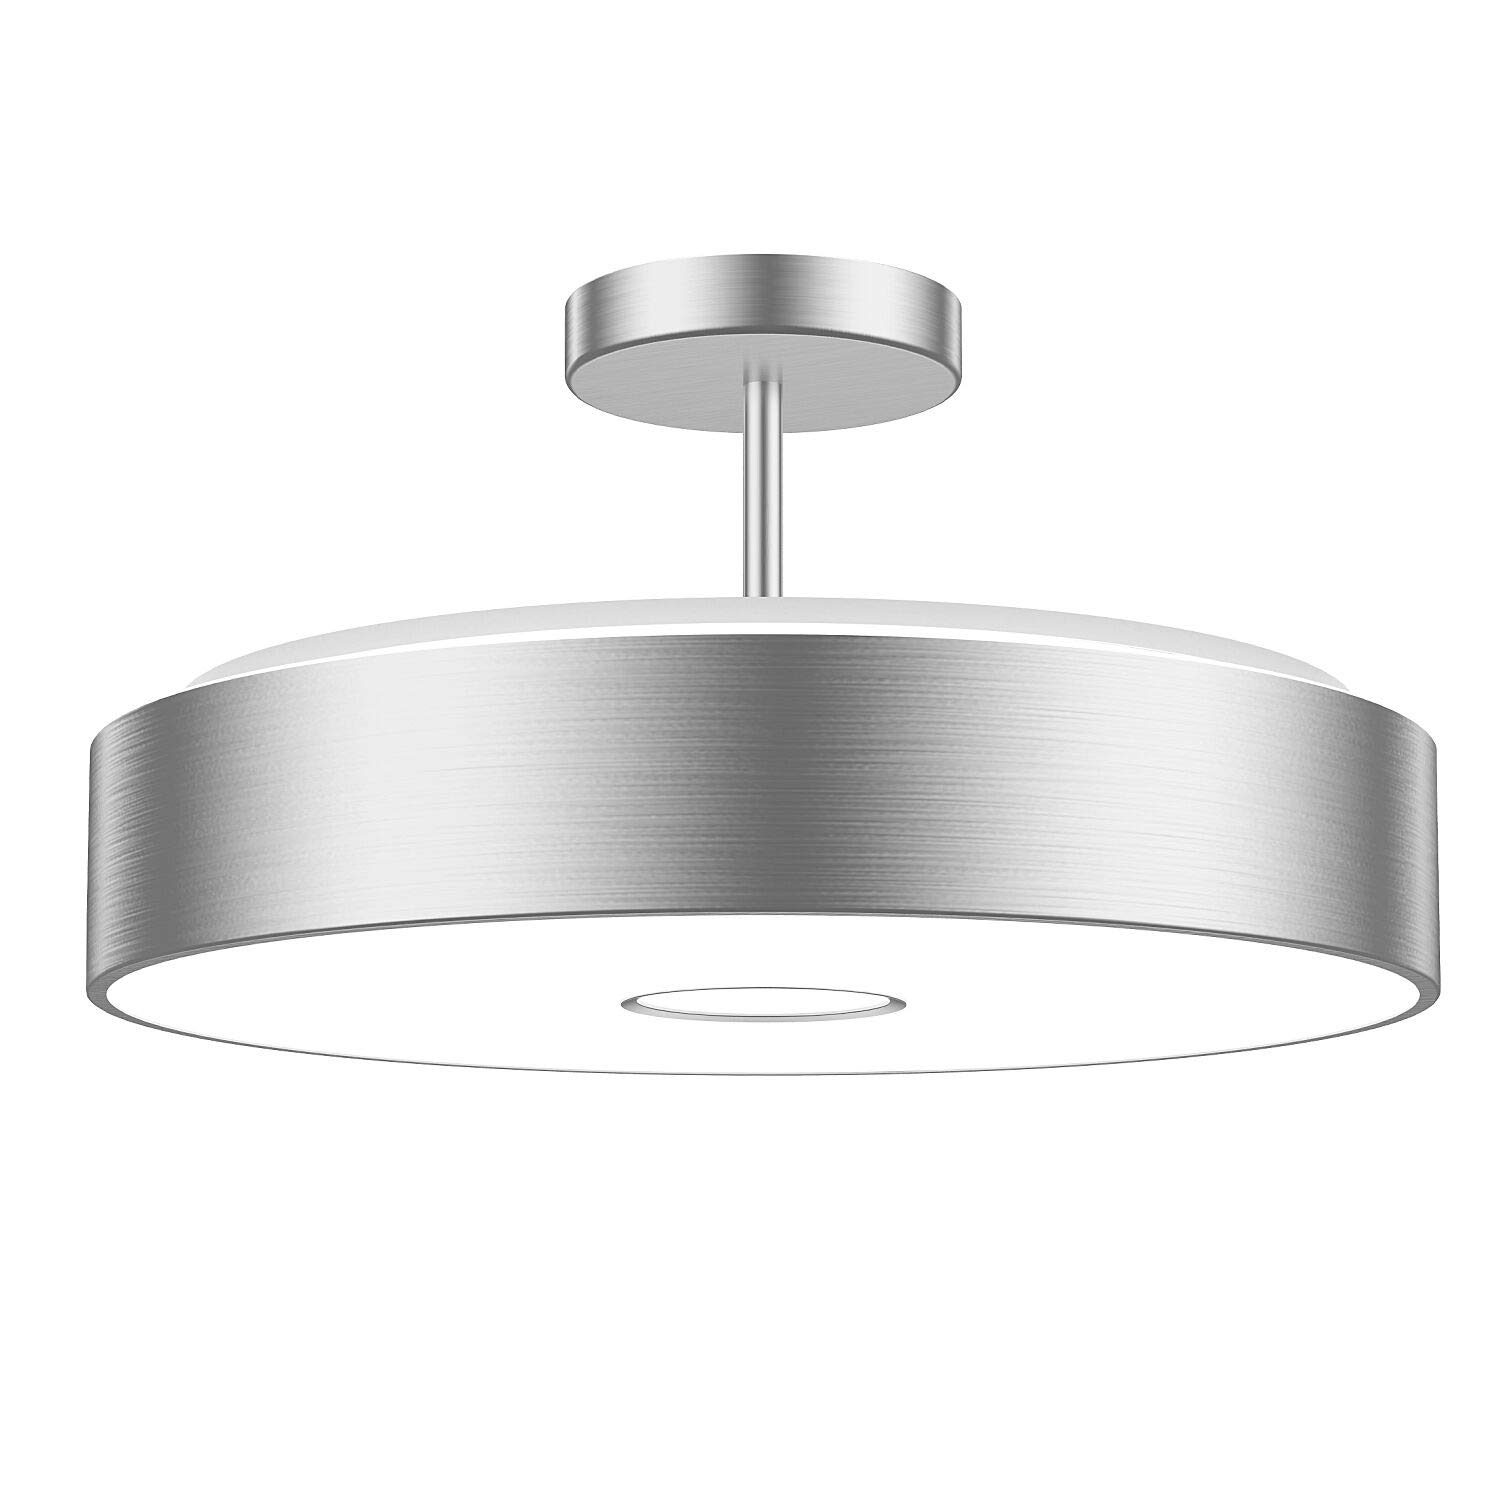 Onforu Waterproof 32W LED Ceiling Lights, CRI 90+, 12.8in, 300W Incandescent Bulbs Equivalent, IP65, 2800lm 5000K Daylight White Semi Flush Mount for Bedroom, Balcony, Living Room